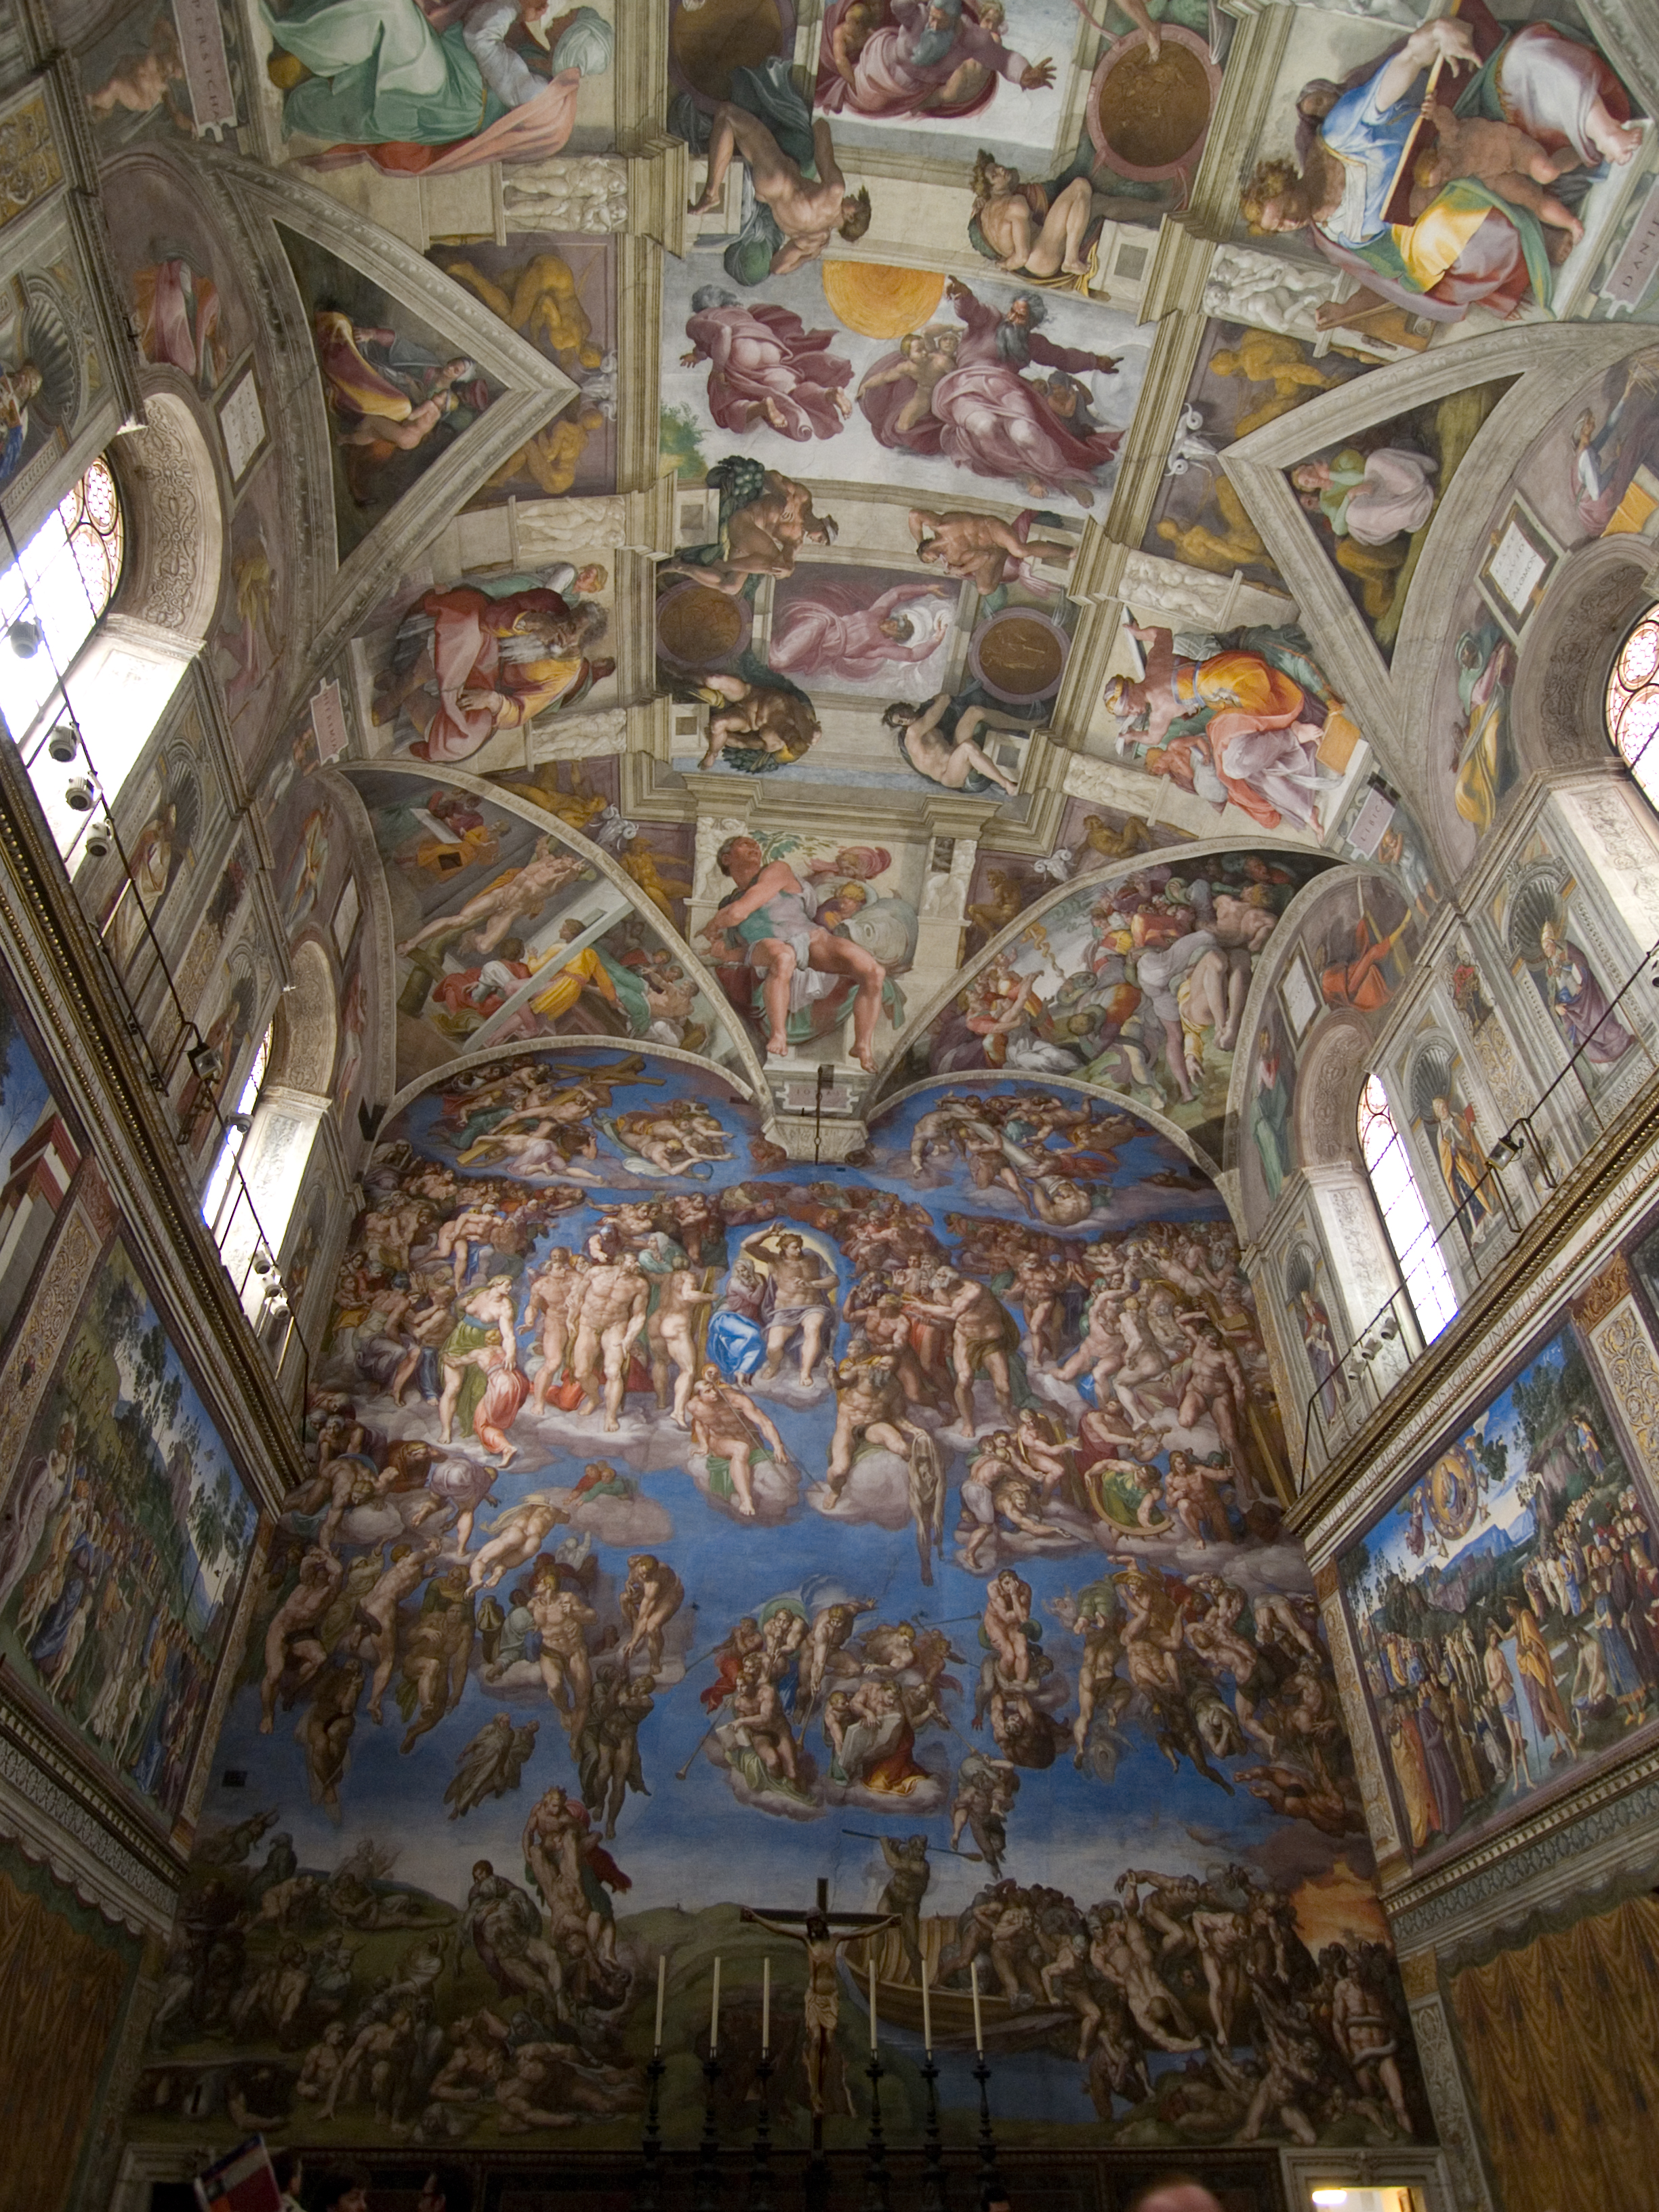 an overview of the sistine chapel - 126 - hidden anatomy in the sistine chapel ceiling: an overview averlicchi the creation of the sun,moon,and plants (c2):human male genitals (in the rolled fold of god's cloak between his legs and buttocks) and female genitals (in the cape of the.